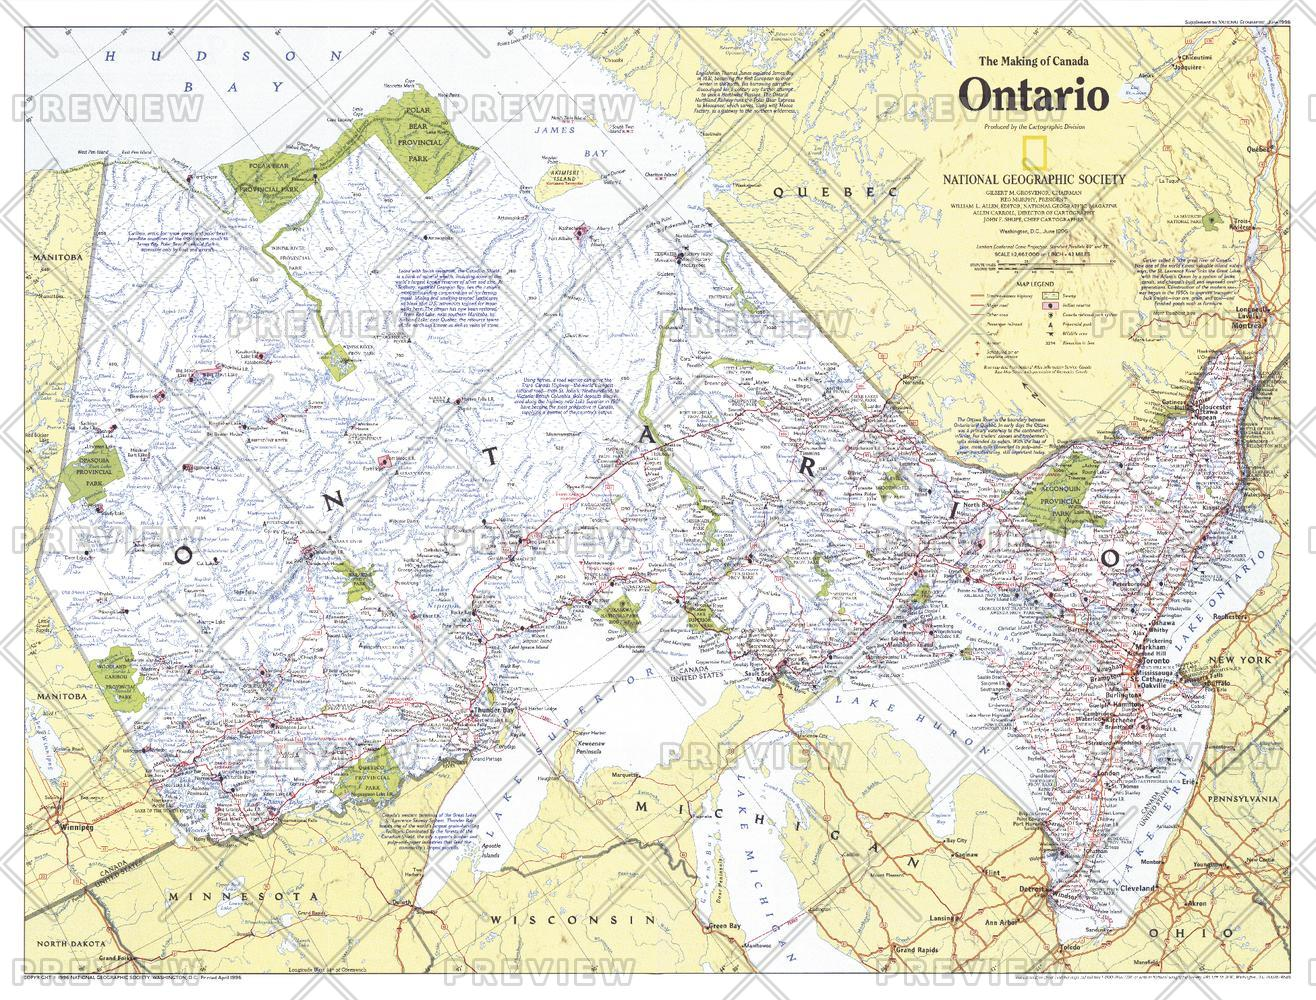 Making of Canada, Ontario  -  Published 1996